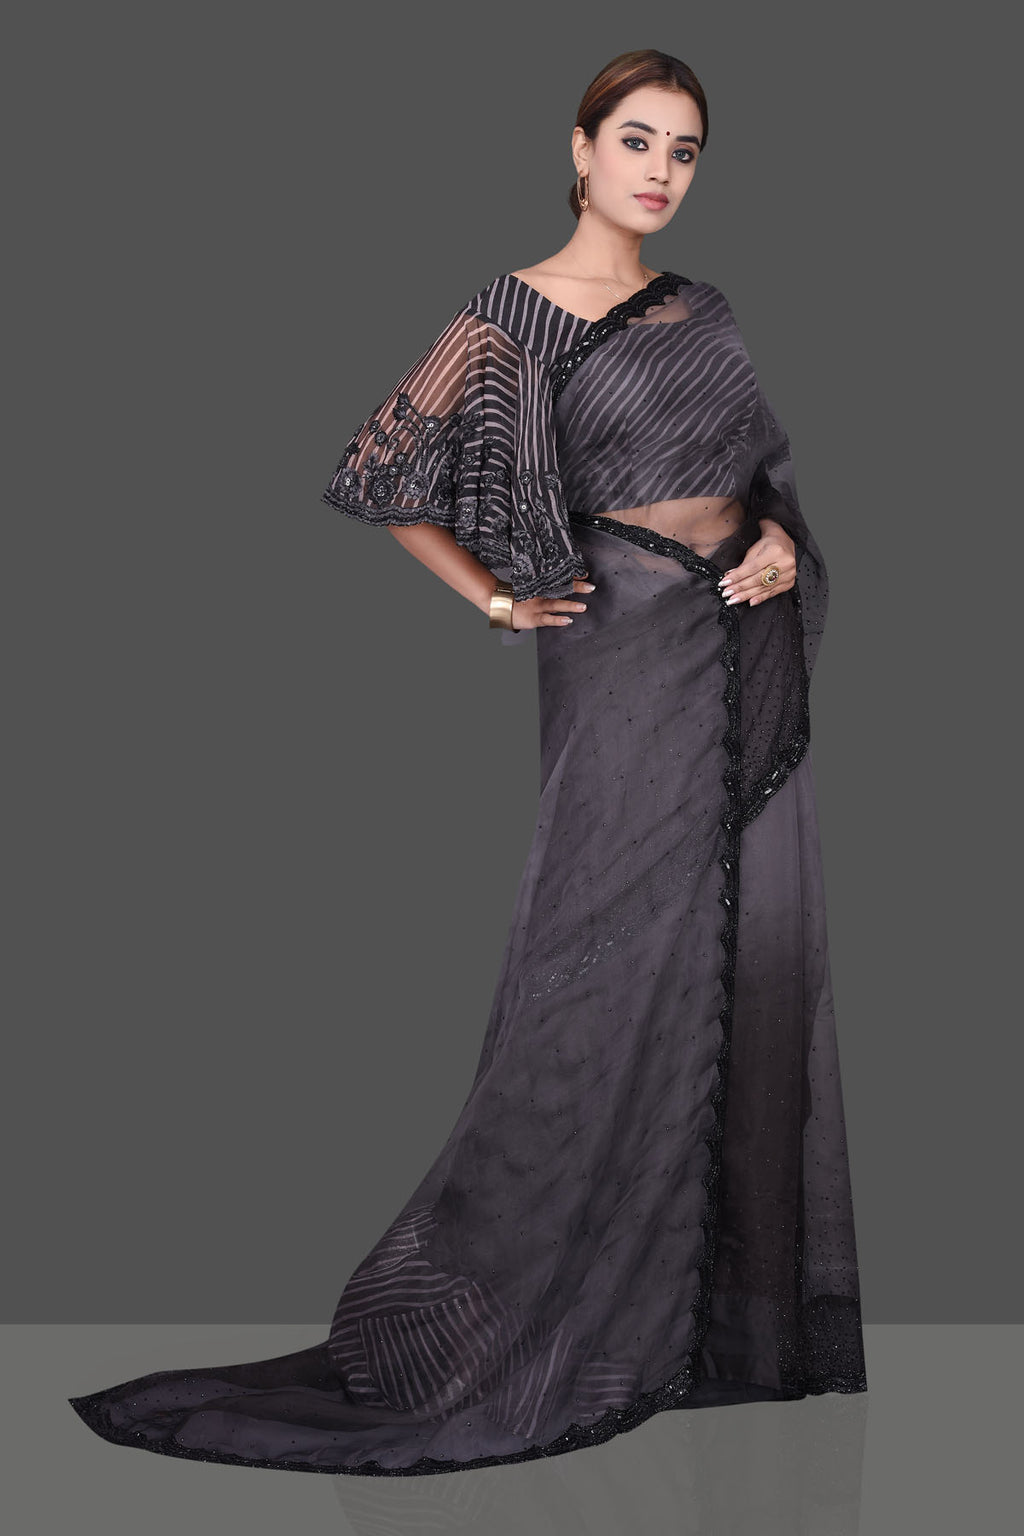 Buy ravishing grey and black crystal work organza  sari online in USA with embroidered  designer saree blouse. Shop beautiful Banarasi sarees, hand embroidered saris, georgette sarees, designer sarees in USA from Pure Elegance Indian fashion store in USA. Shop online now.-full view